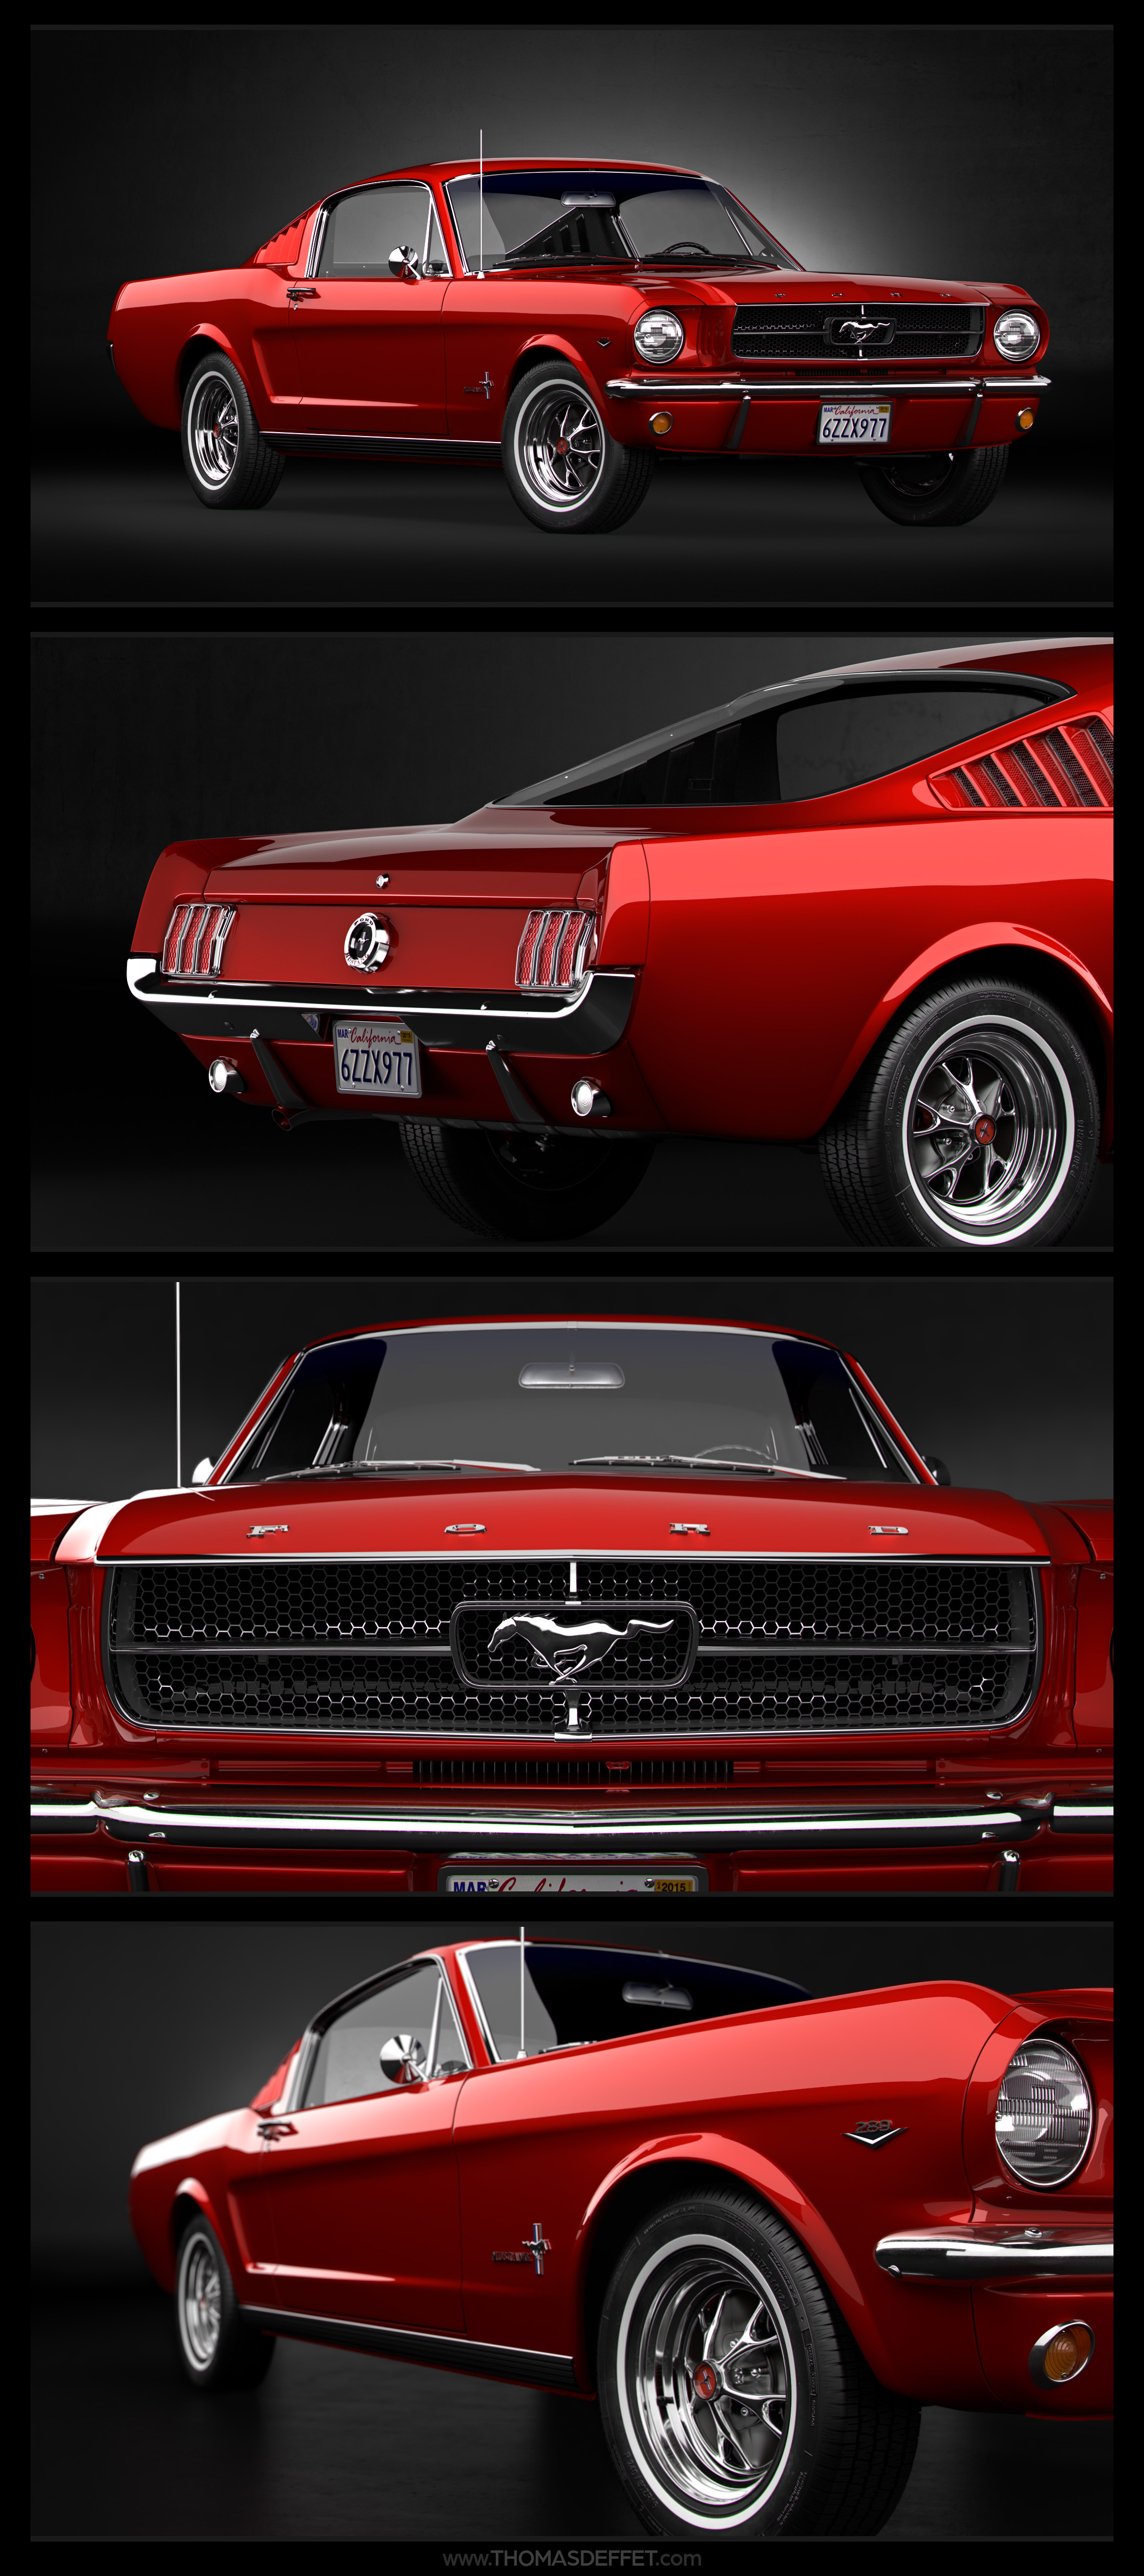 Mustang - 03 compo